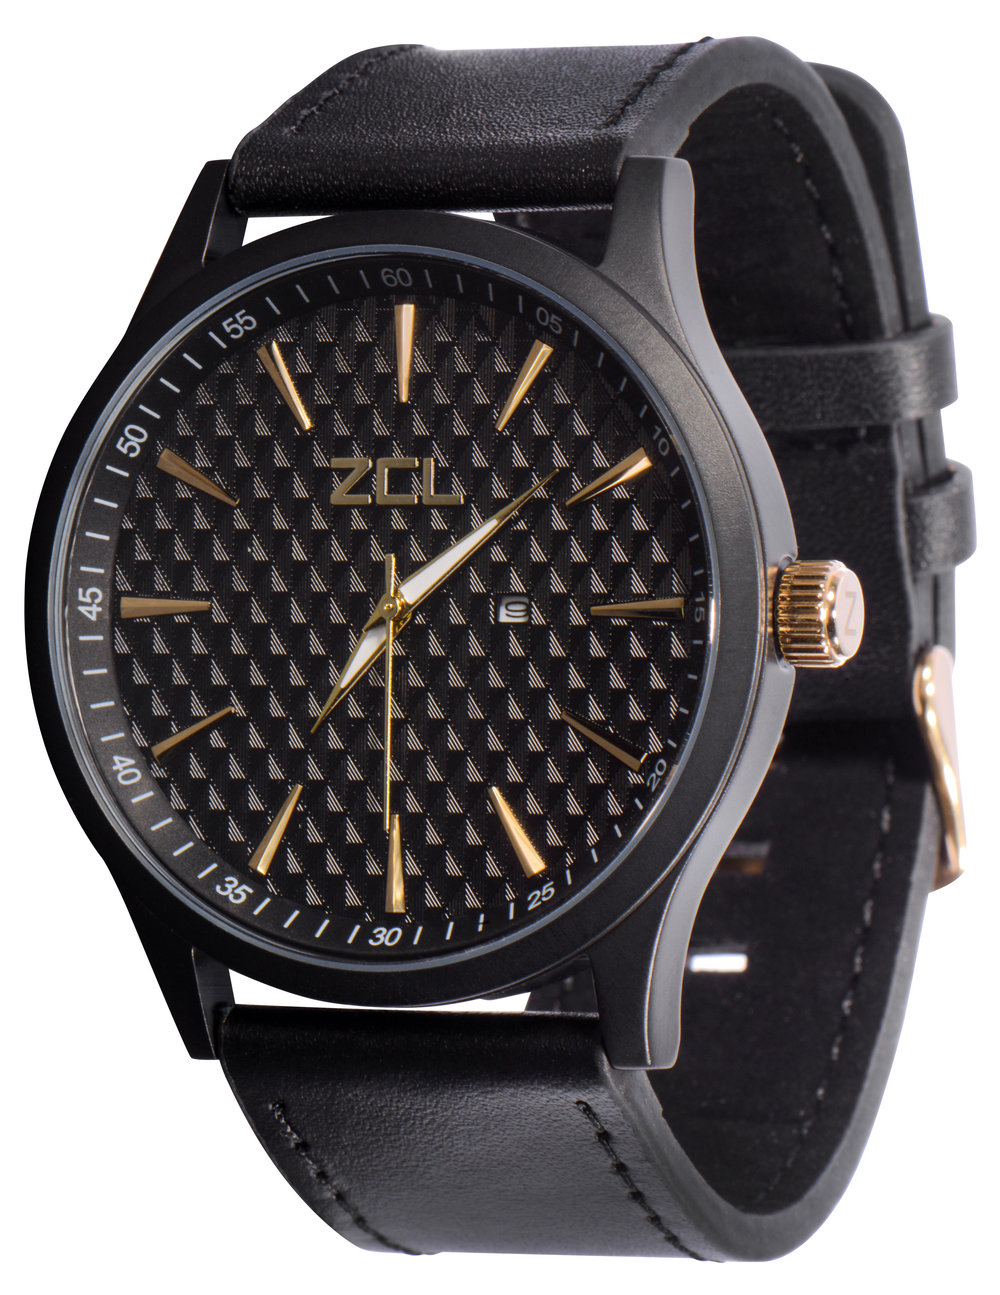 ZCL Watch Gold-1.jpg